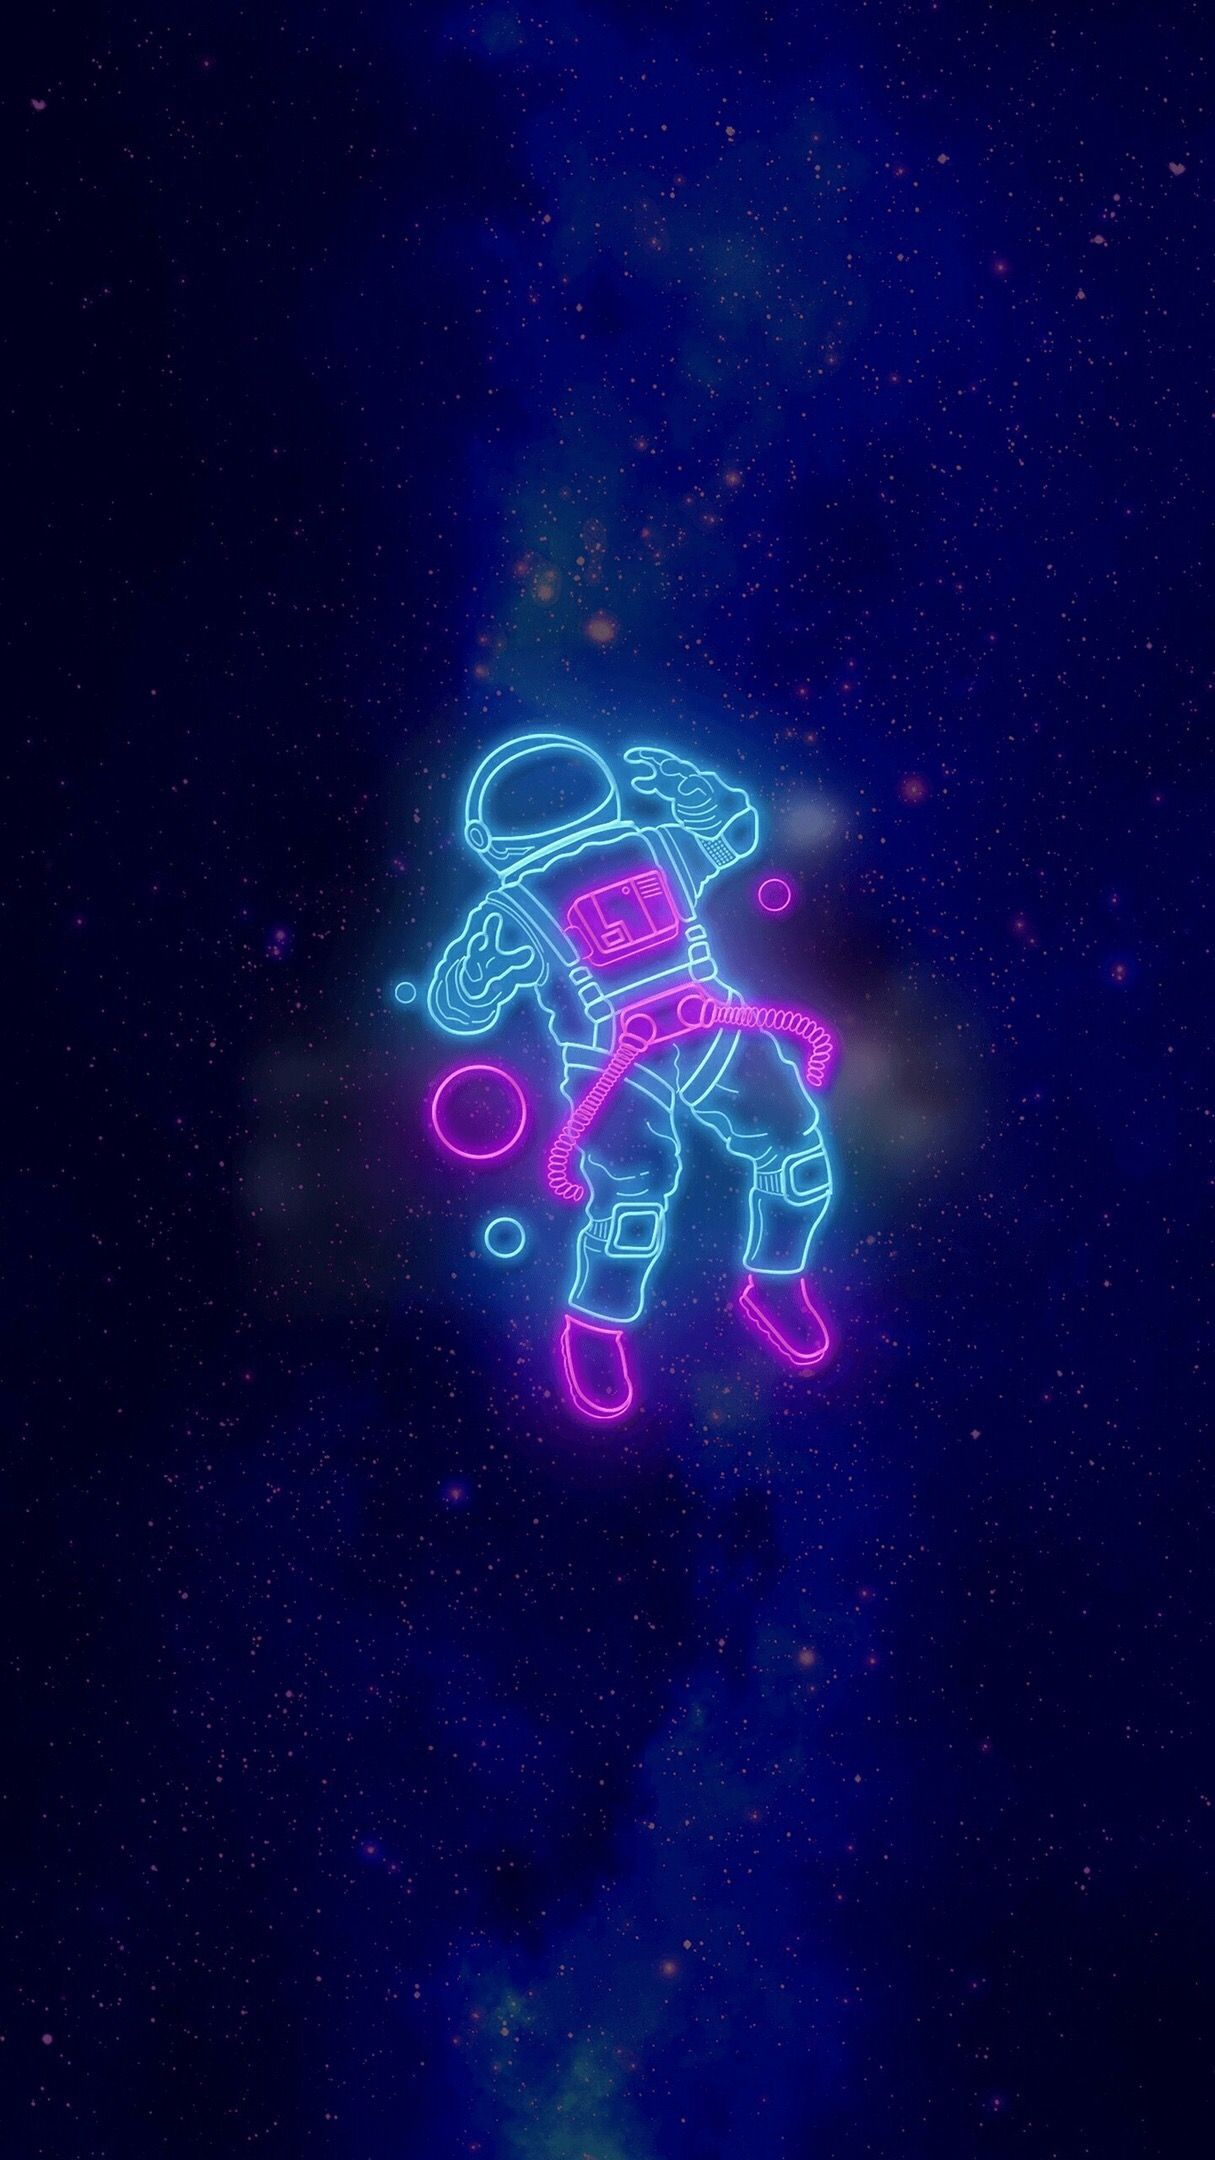 Https All Images Net Wallpaper Iphone Neon 230 Wallpaper Iphone Neon 230 Wallpaper Iphone Neon Astronaut Wallpaper Wallpaper Space